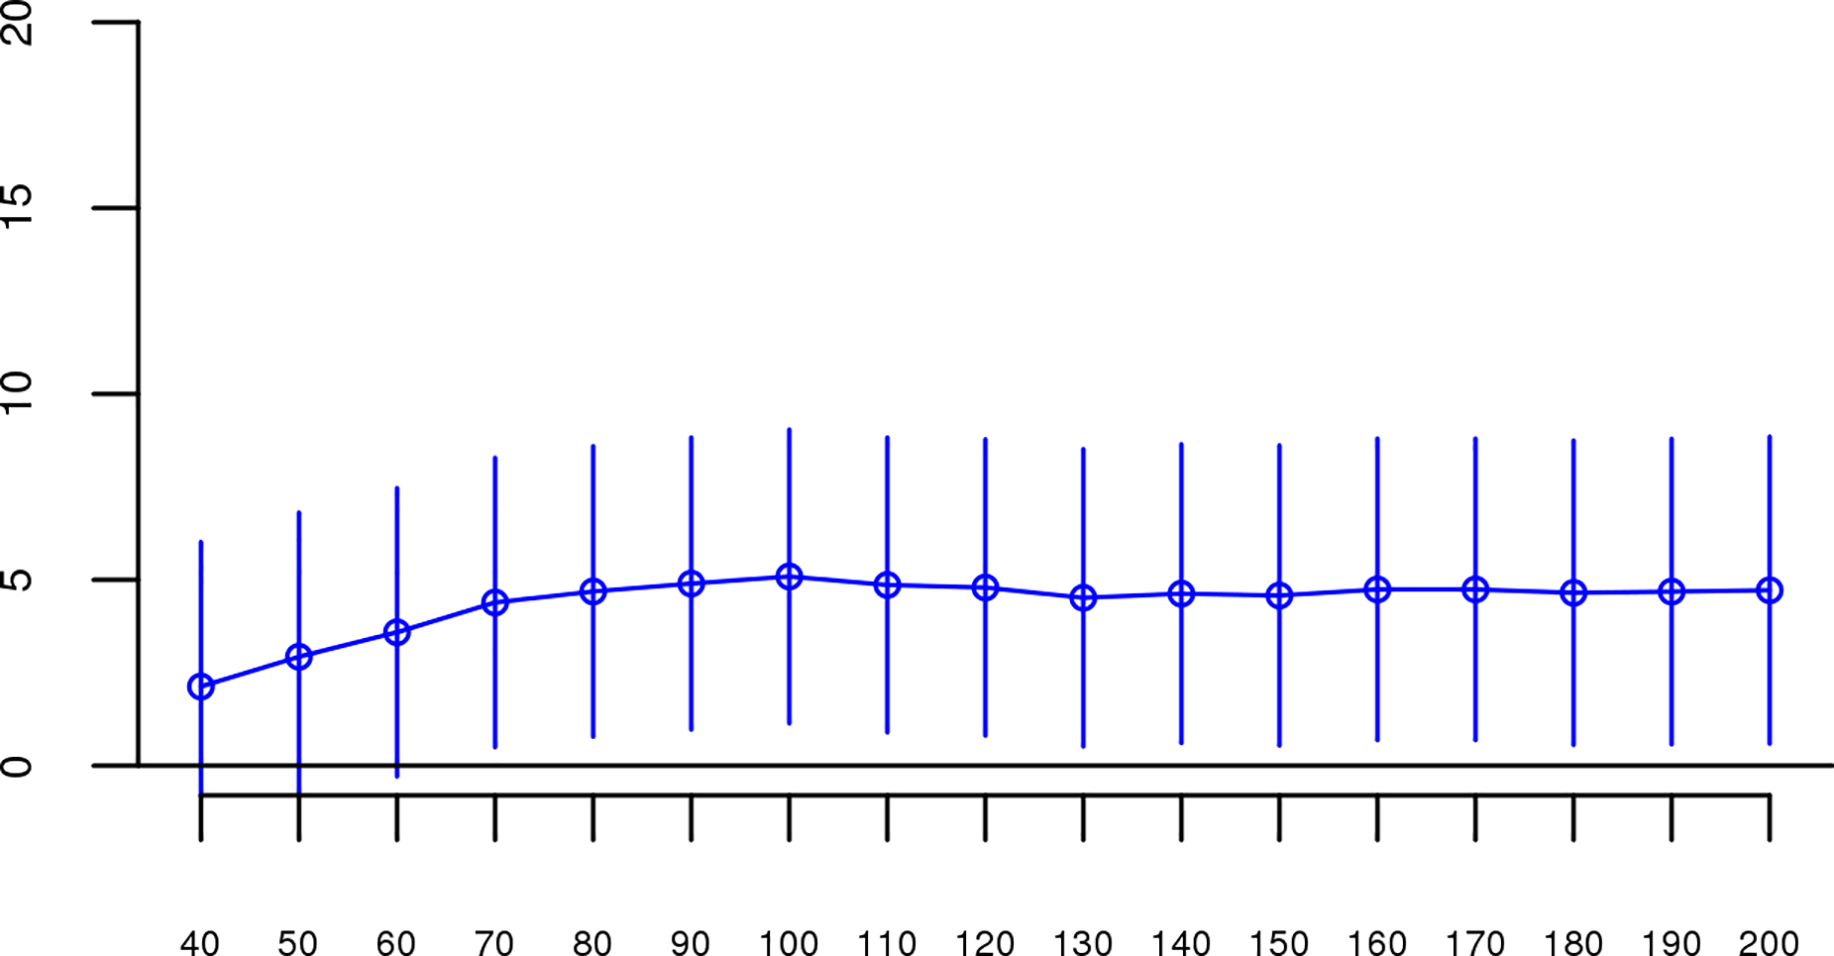 Slope estimates (the change in log odds for a 1% increase in <i>Froh</i>; points) and their 95% confidence intervals (bars) of <i>Froh</i> from the combined unimputed SNP data predicting schizophrenia for different SNP thresholds of calling ROHs.